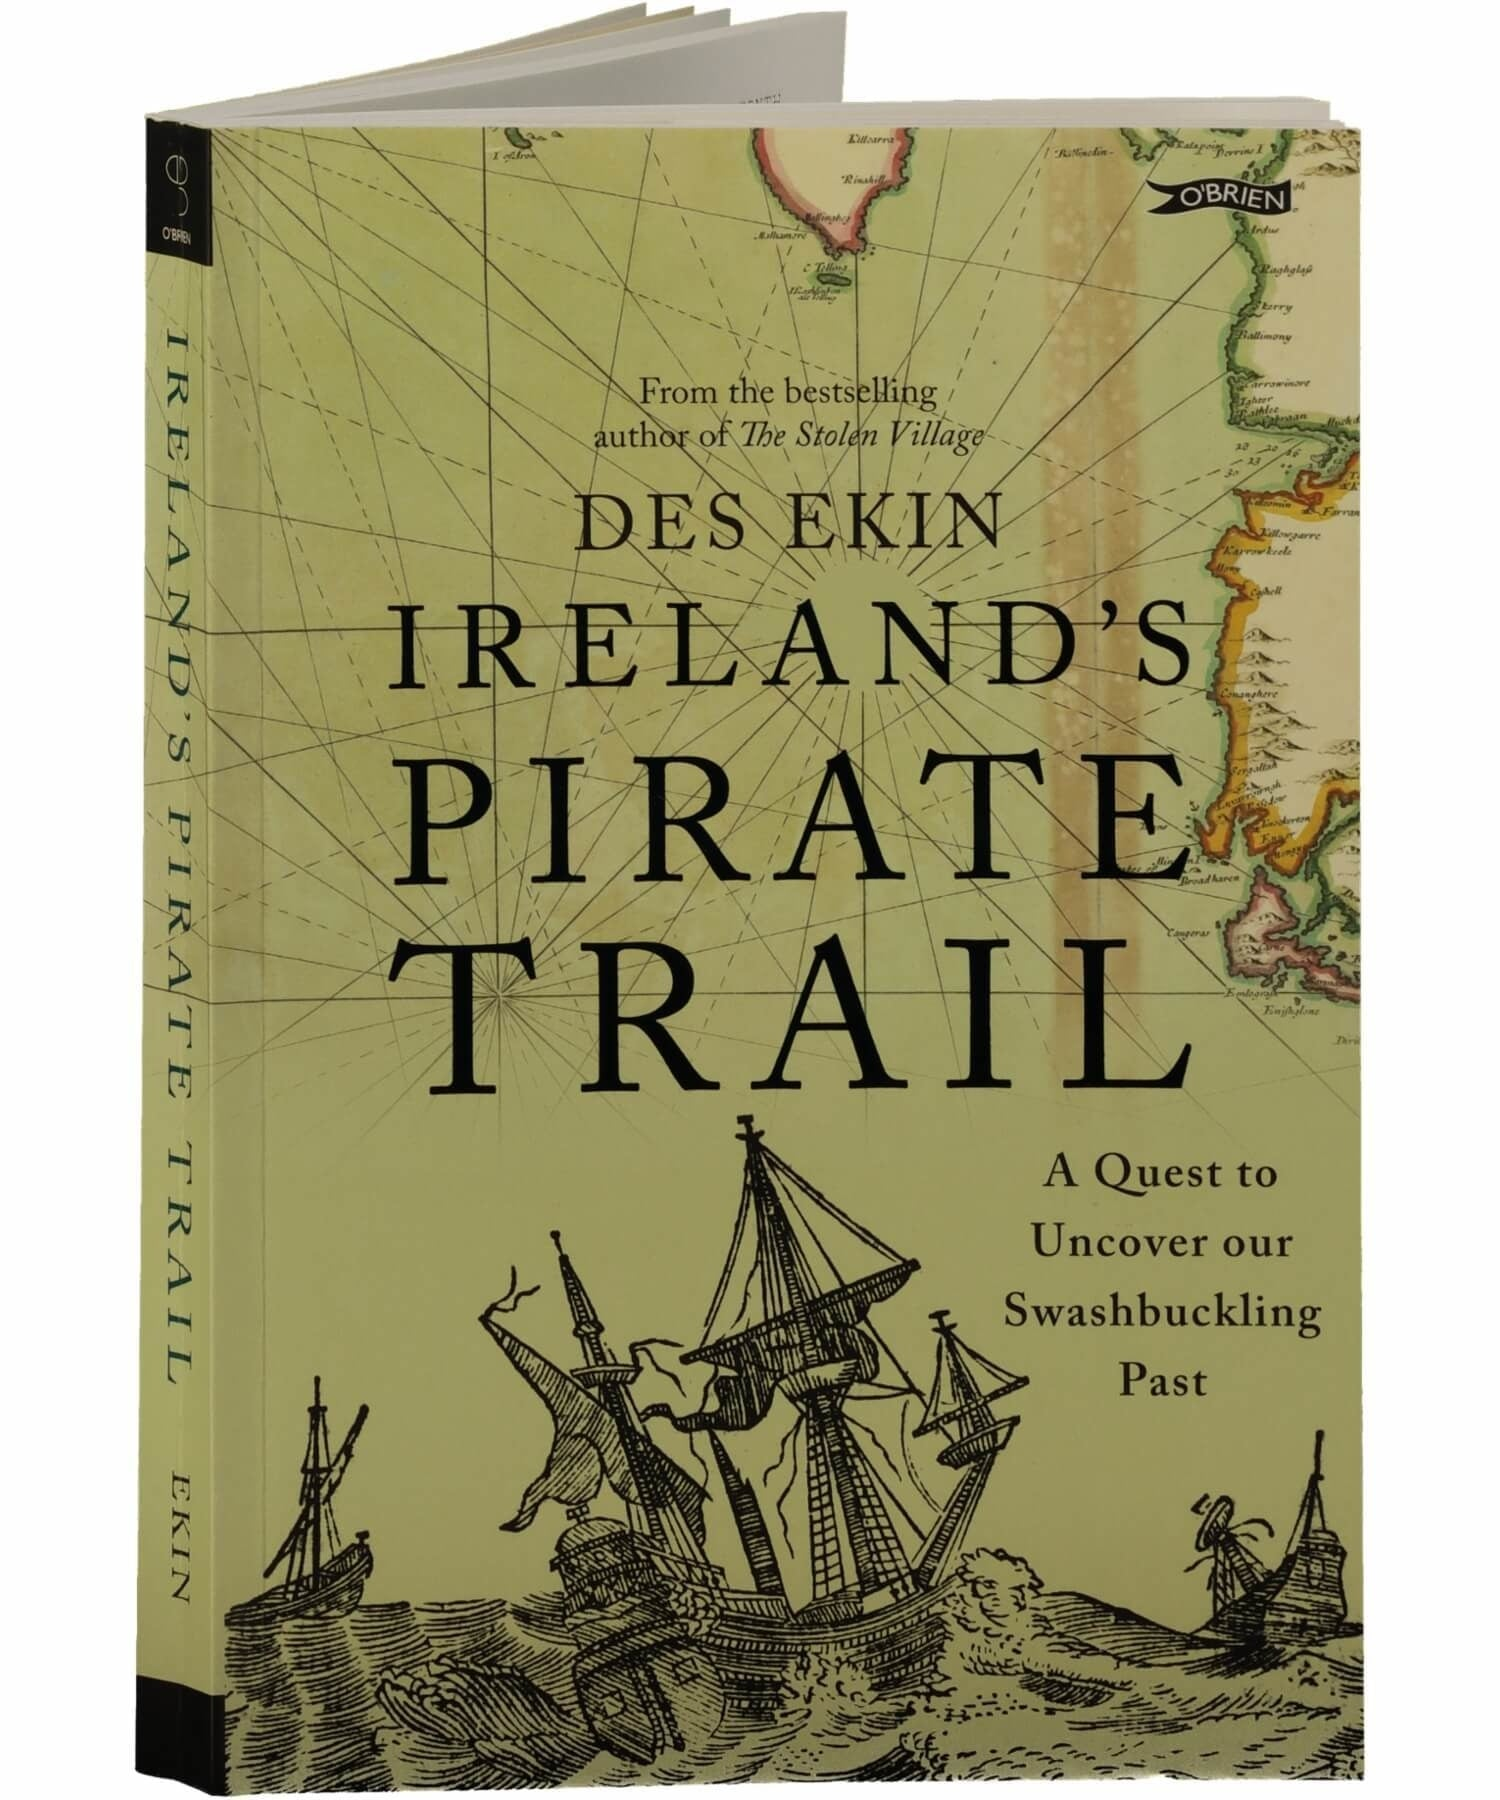 Irelands Pirate Trail The OBrien Press Books